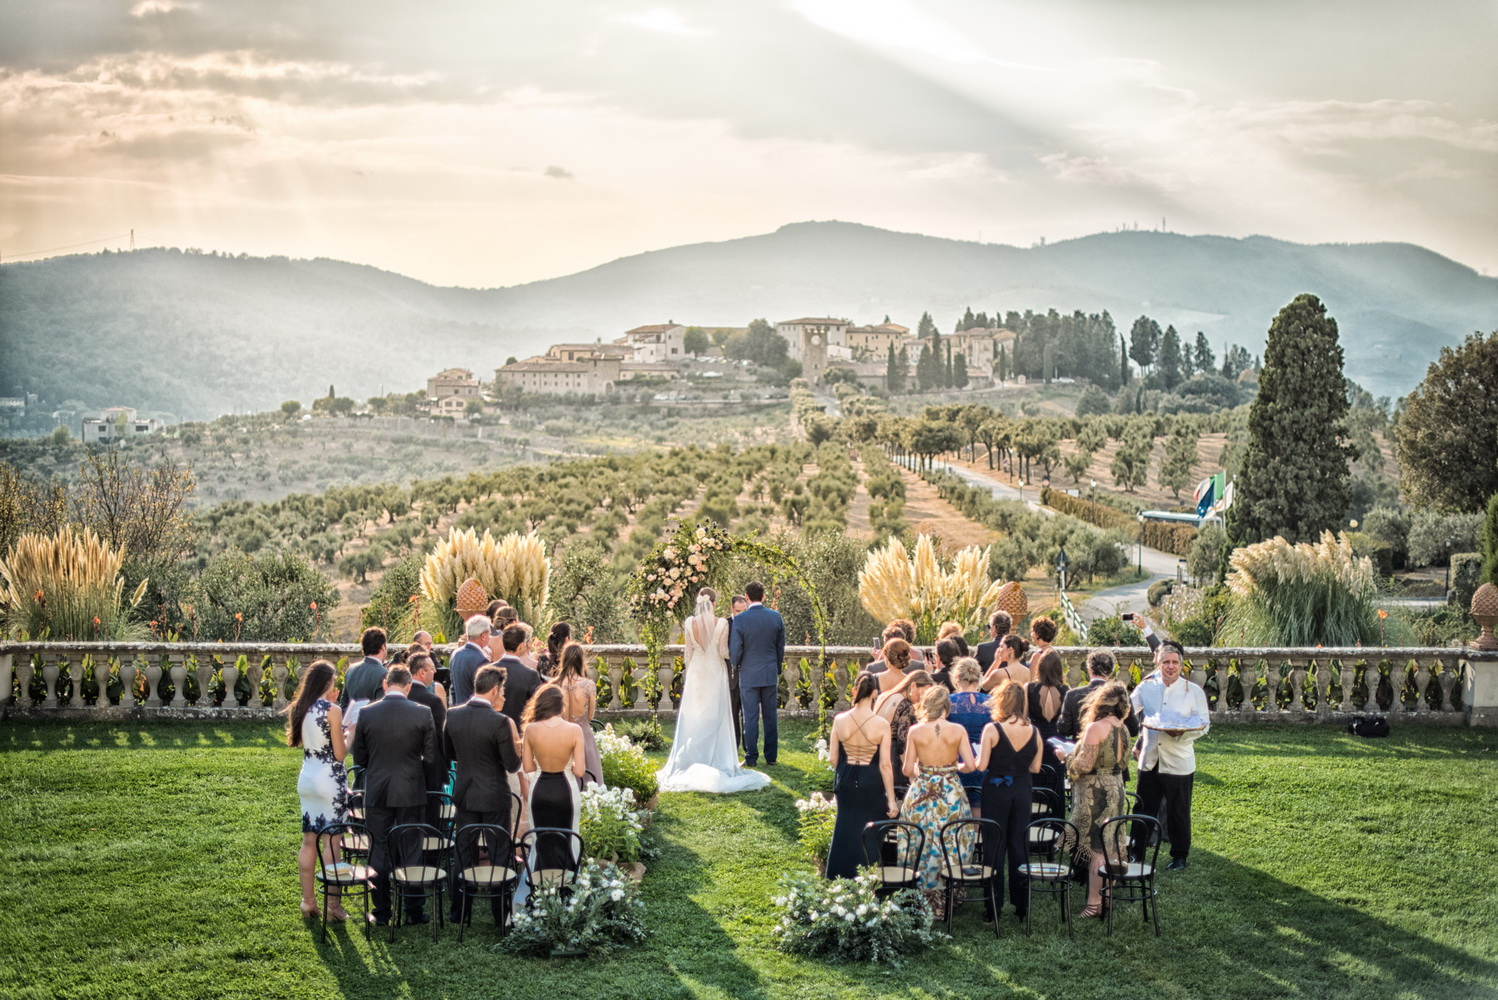 Destination Wedding Toscana | Caroline e Fernando destination wedding na toscana | caroline e fernando Destination Wedding na Toscana | Caroline e Fernando marco zammarchi destination wedding 22